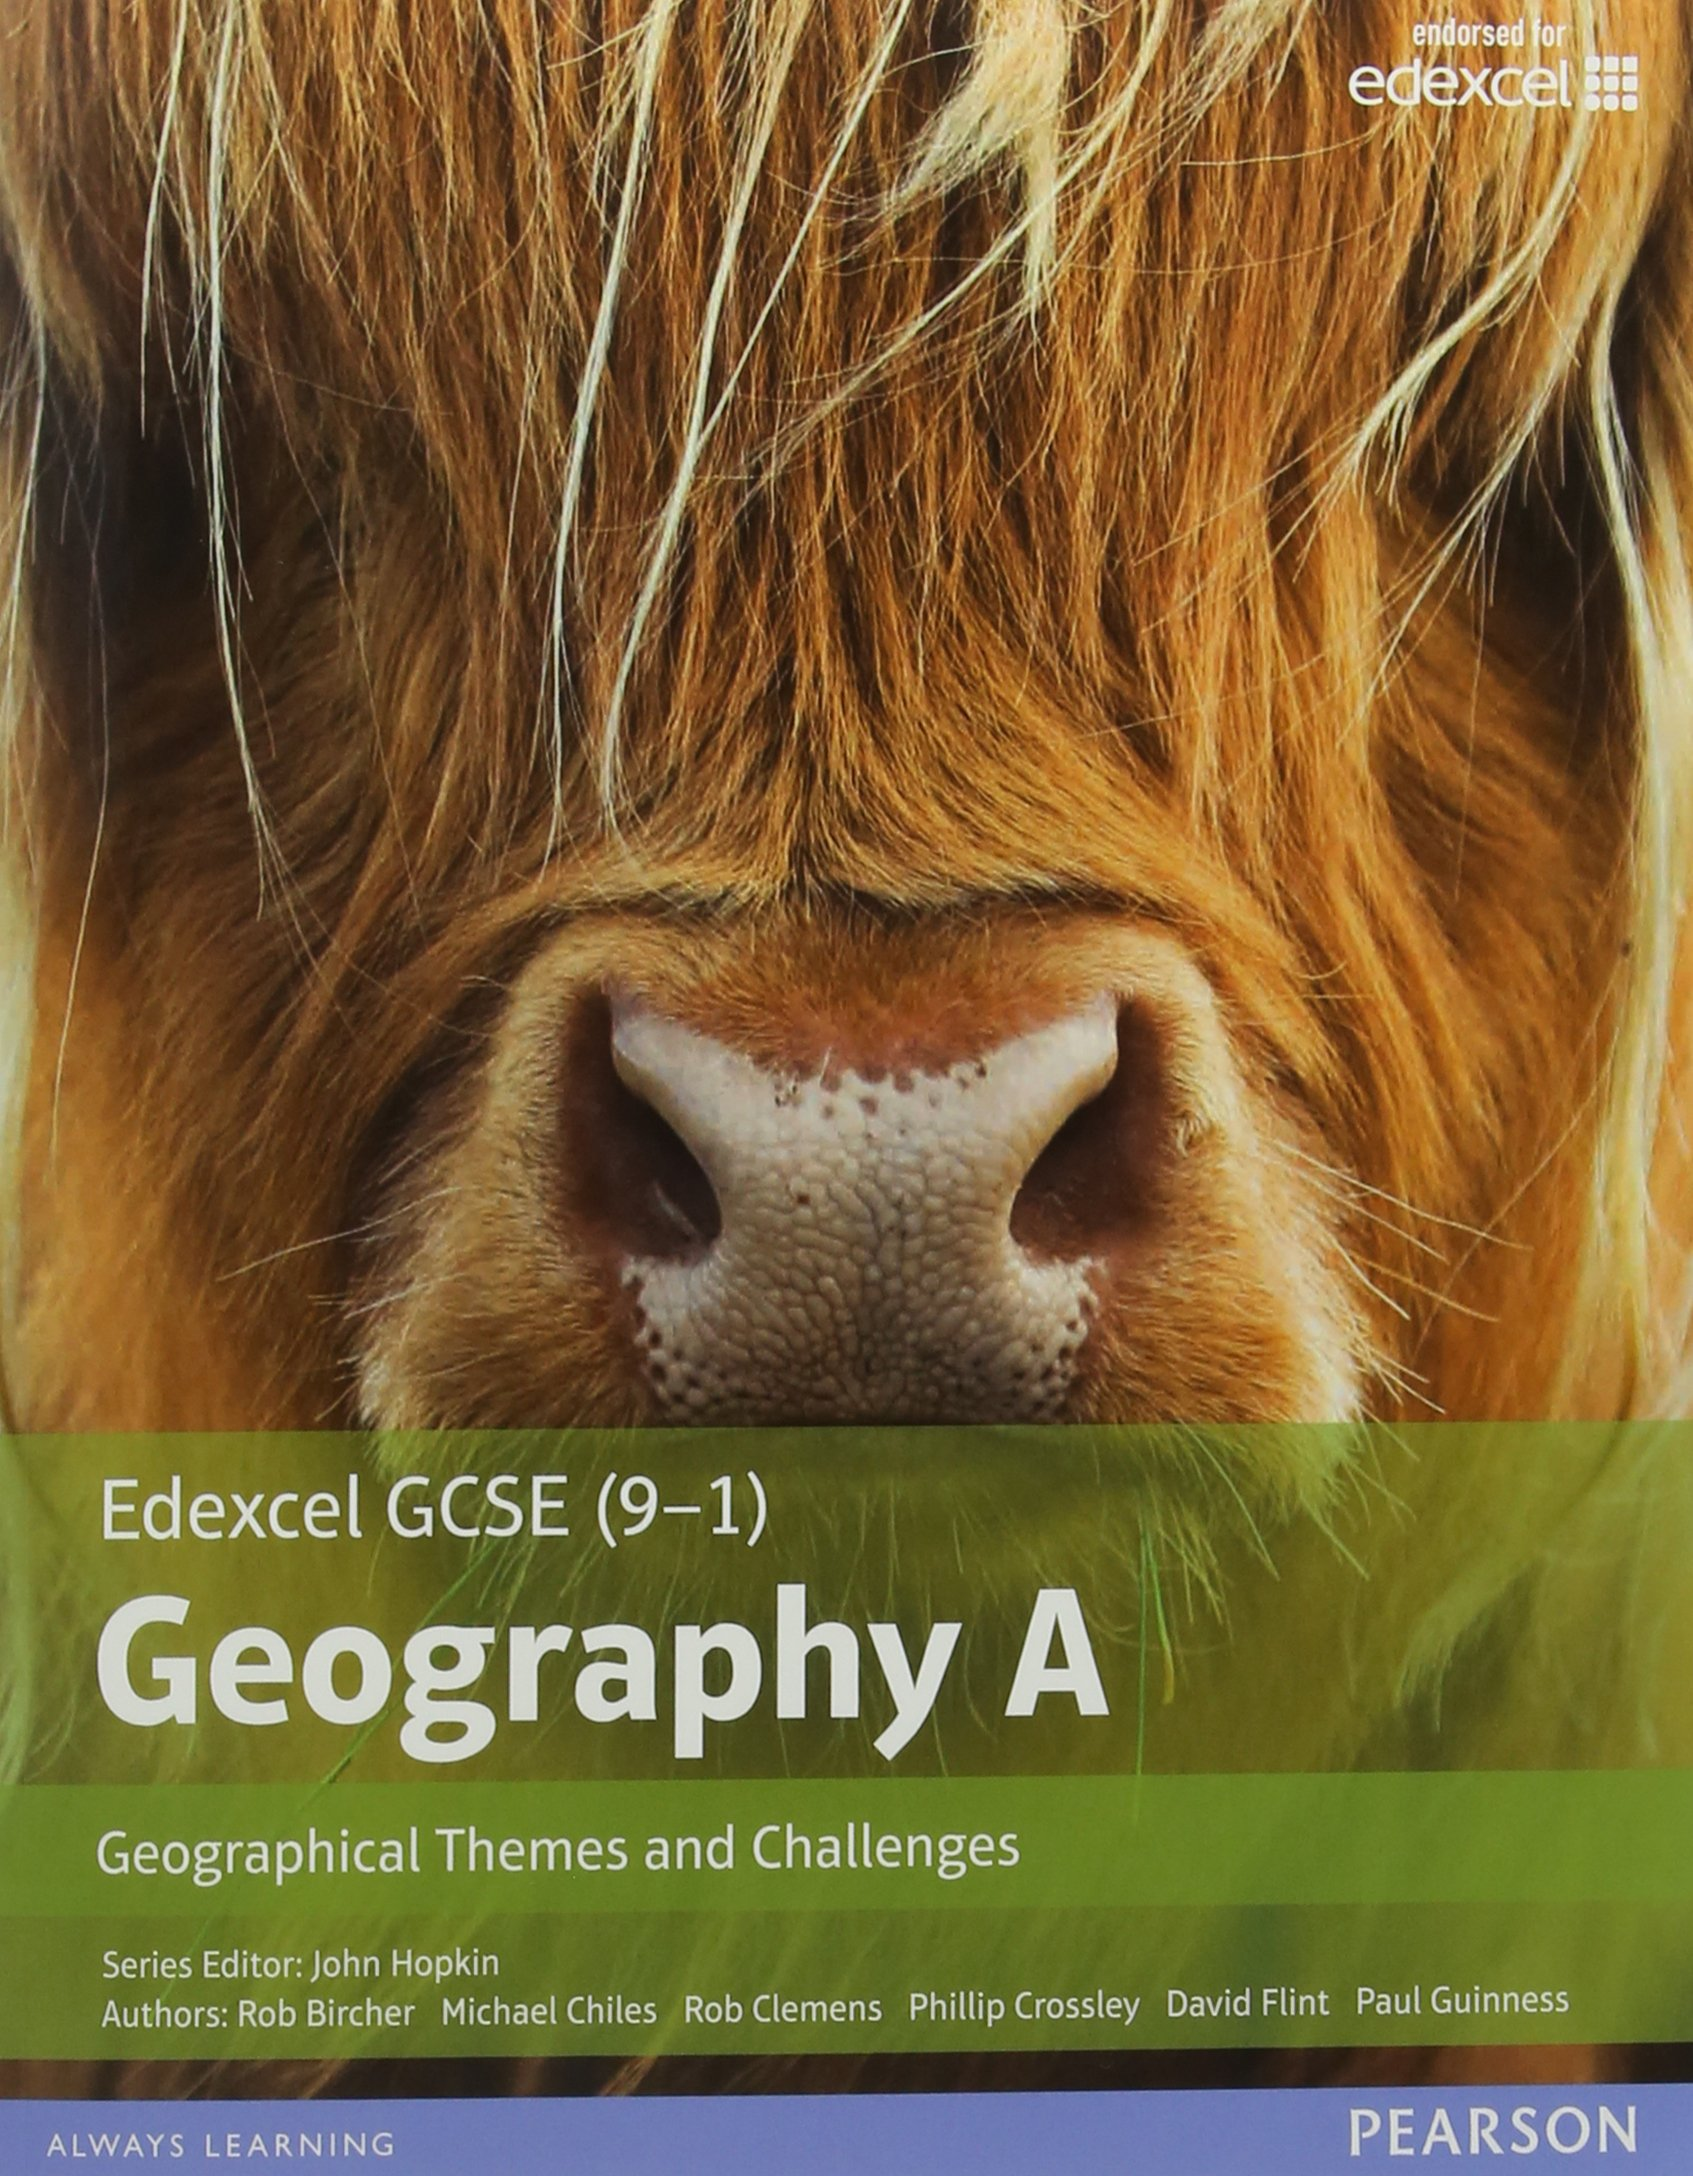 GCSE (9-1) Geography specification A: Geographical Themes and Challenges (Edexcel Geography GCSE Specification A 2016) by Edexcel Limited